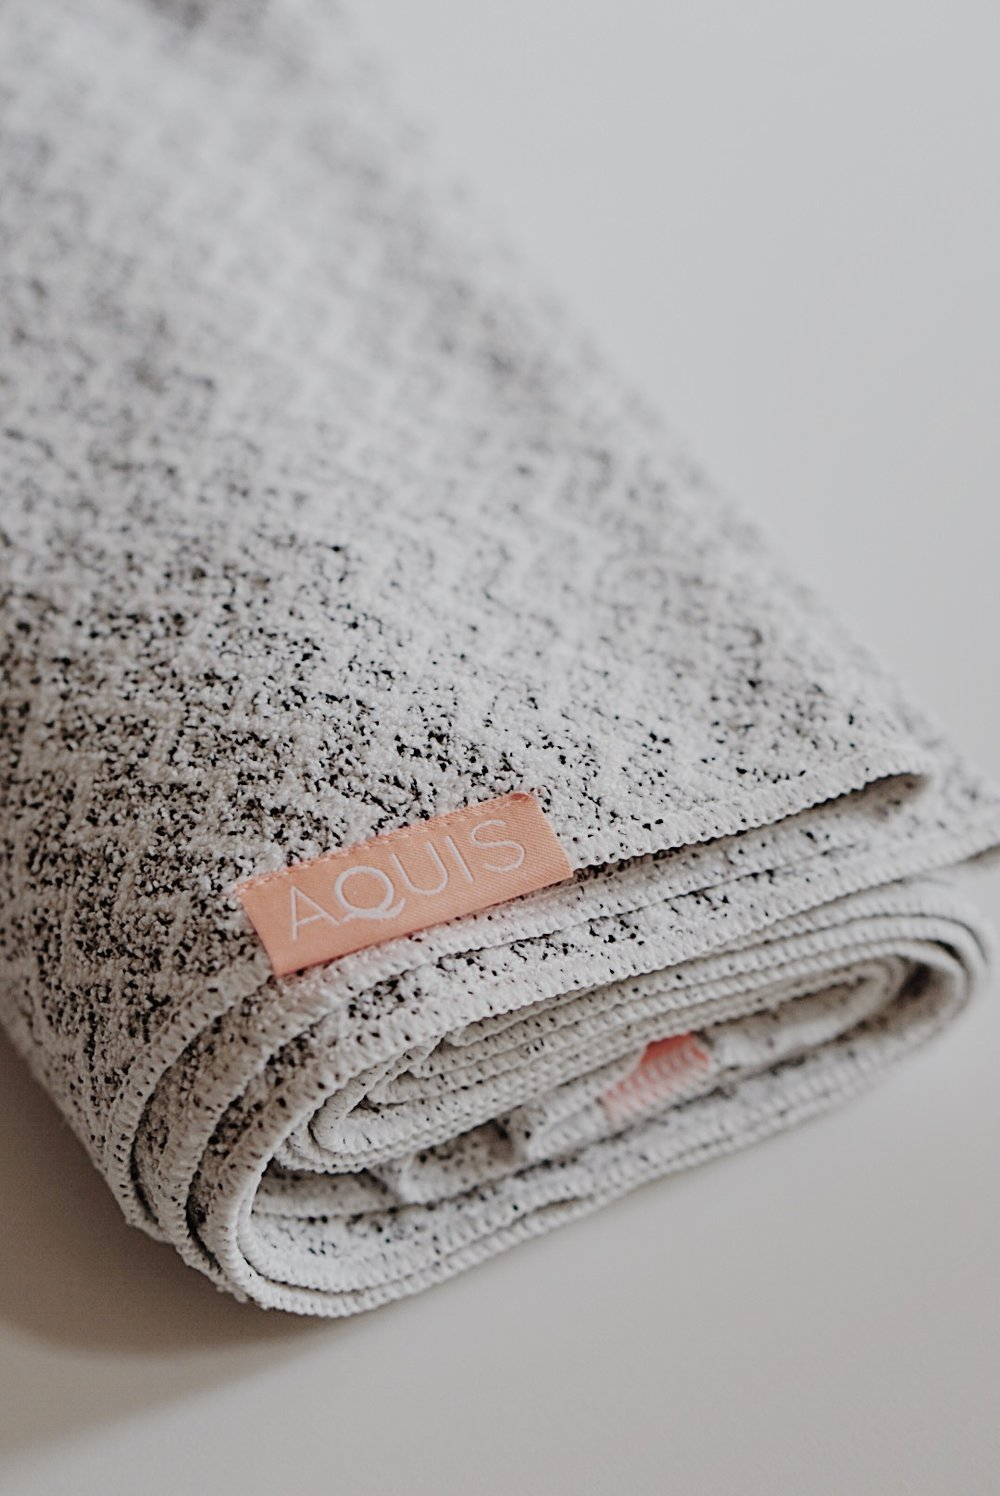 Spring Favorites Aquis Hair Towel Ulta